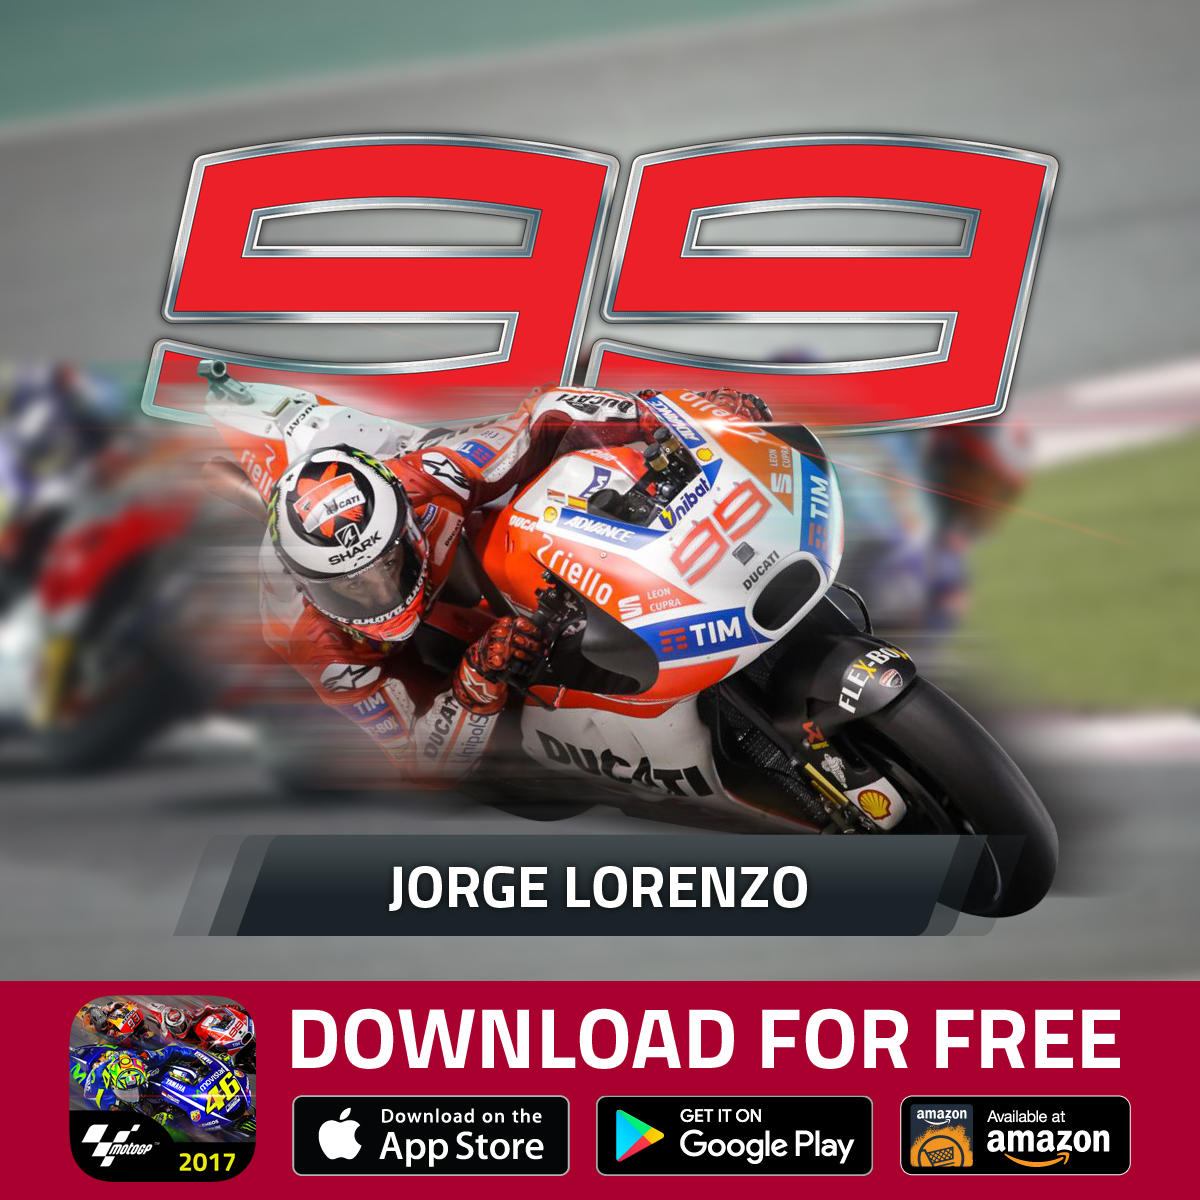 MotoGP Fan World Championship Series Gets AppStore Update for 2017   Company Newsroom of WePlay ...